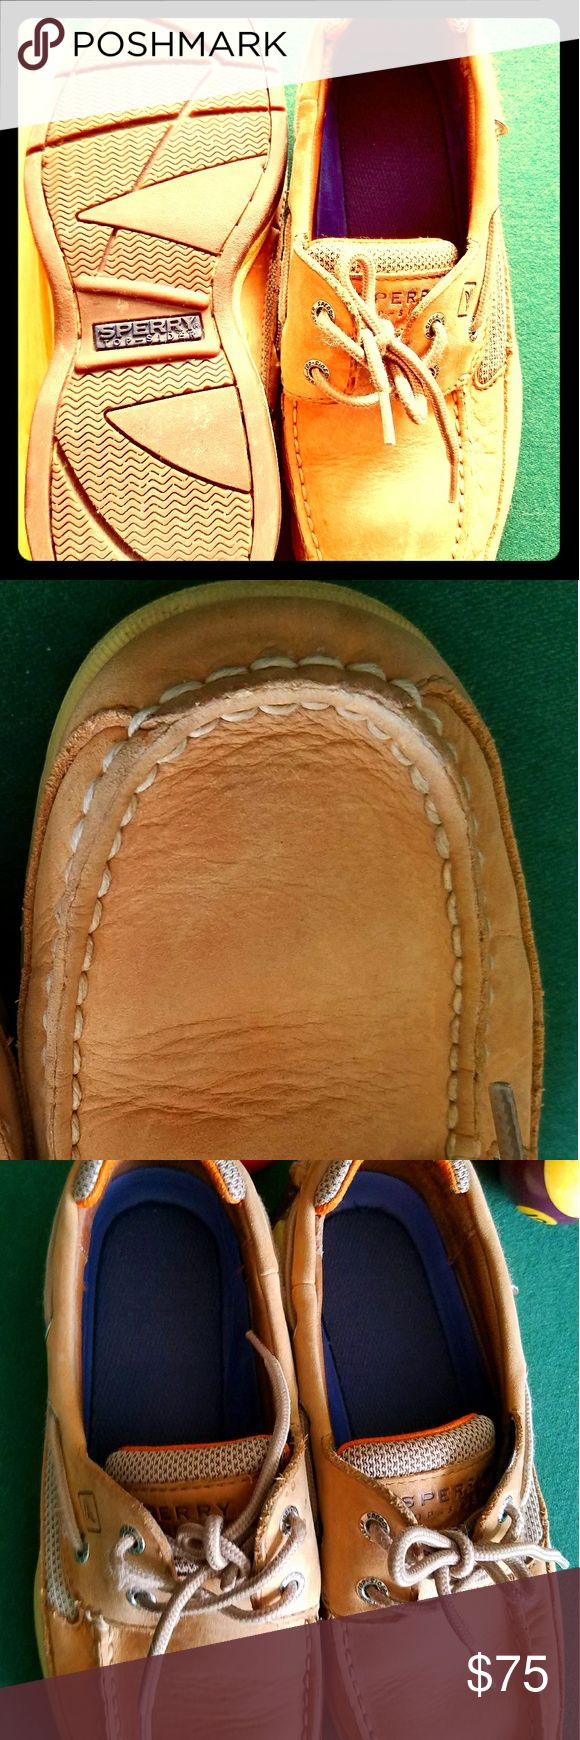 Sperry Top-Sider Men's size 8 Sperry Top-Sider shoes. Men's size 8. EUC.   EVEN the soles look nearly new. Sperry Shoes Loafers & Slip-Ons